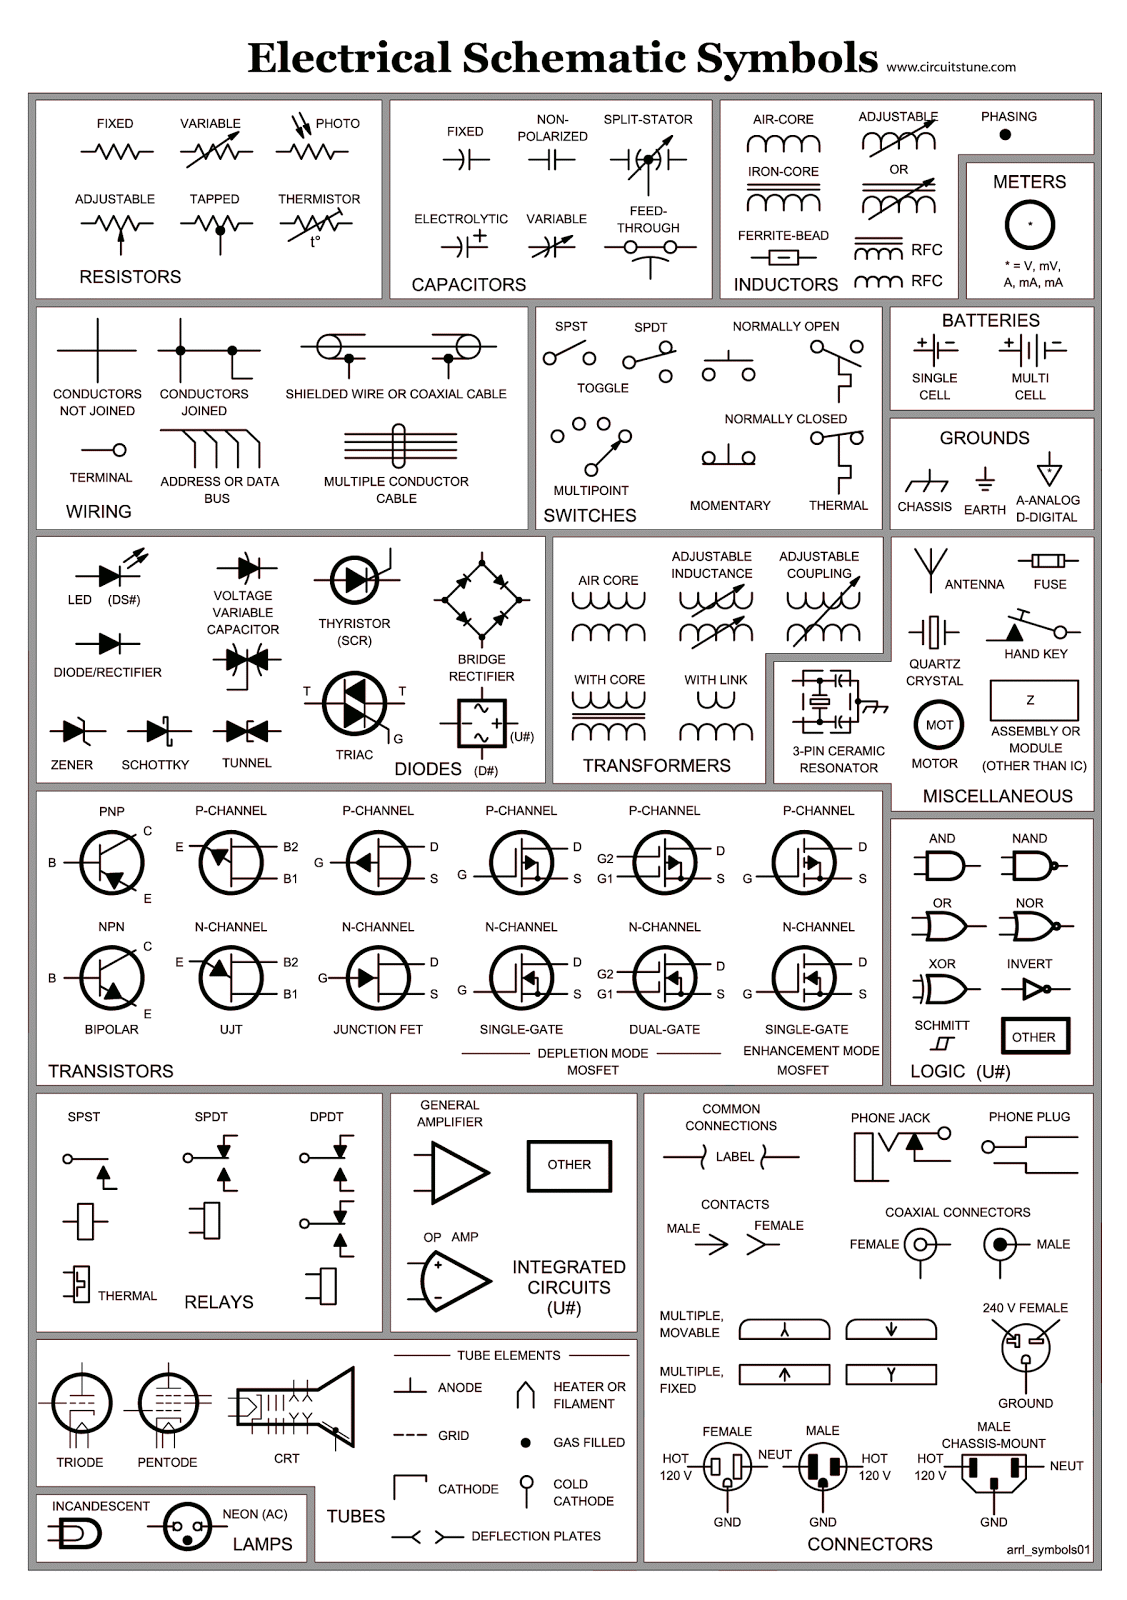 Old Wiring Diagram Symbols Free Download Wiring Diagram Xwiaw